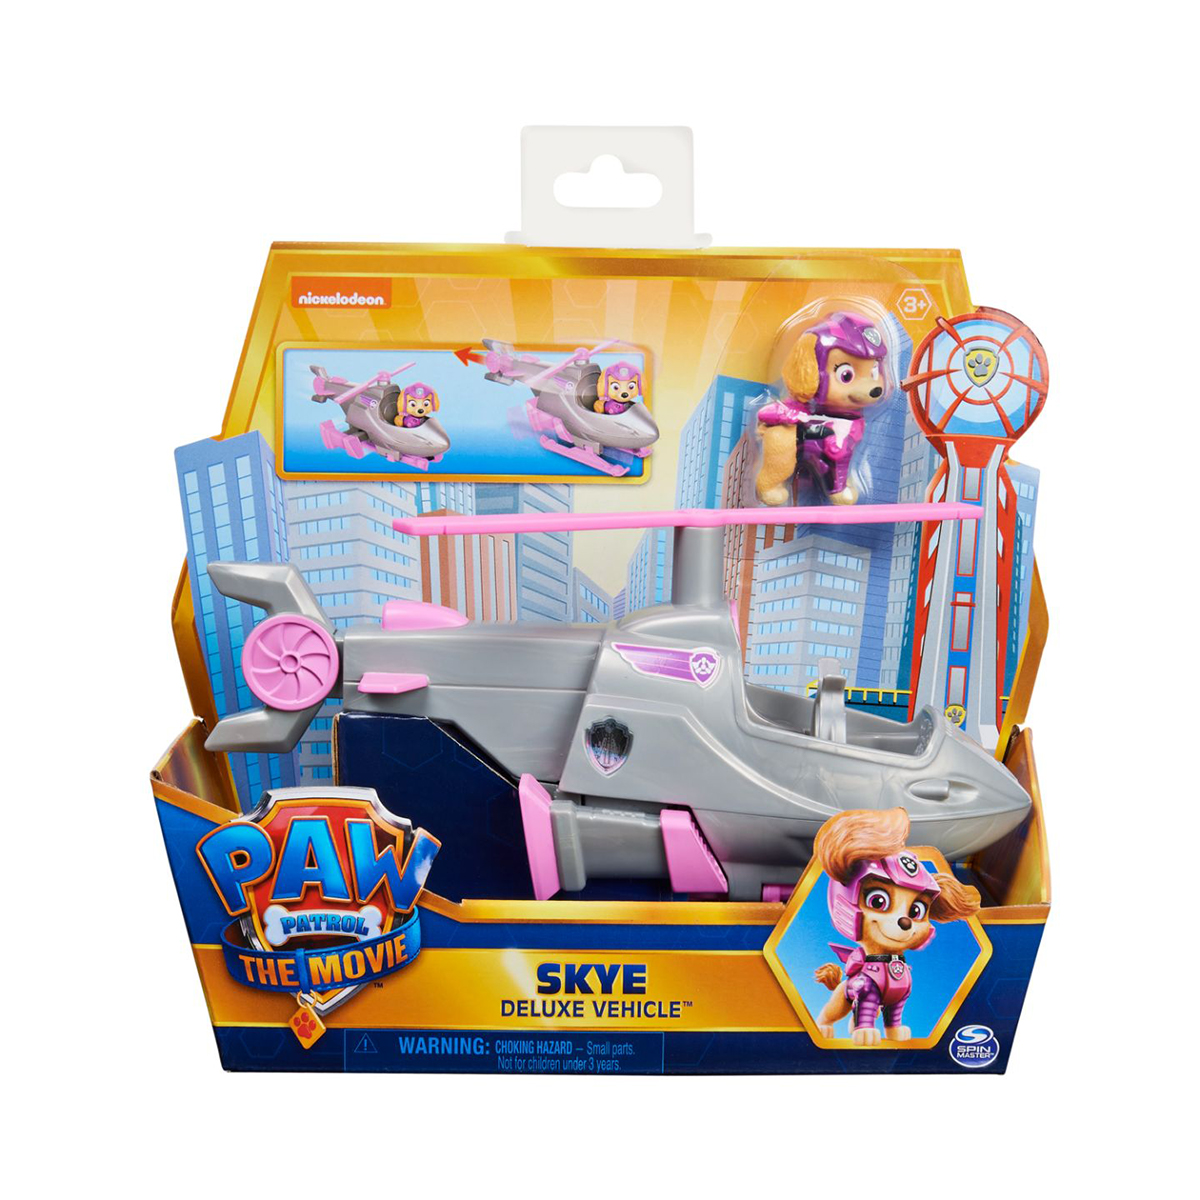 Jucarie interactiva, Paw Patrol, elicopter